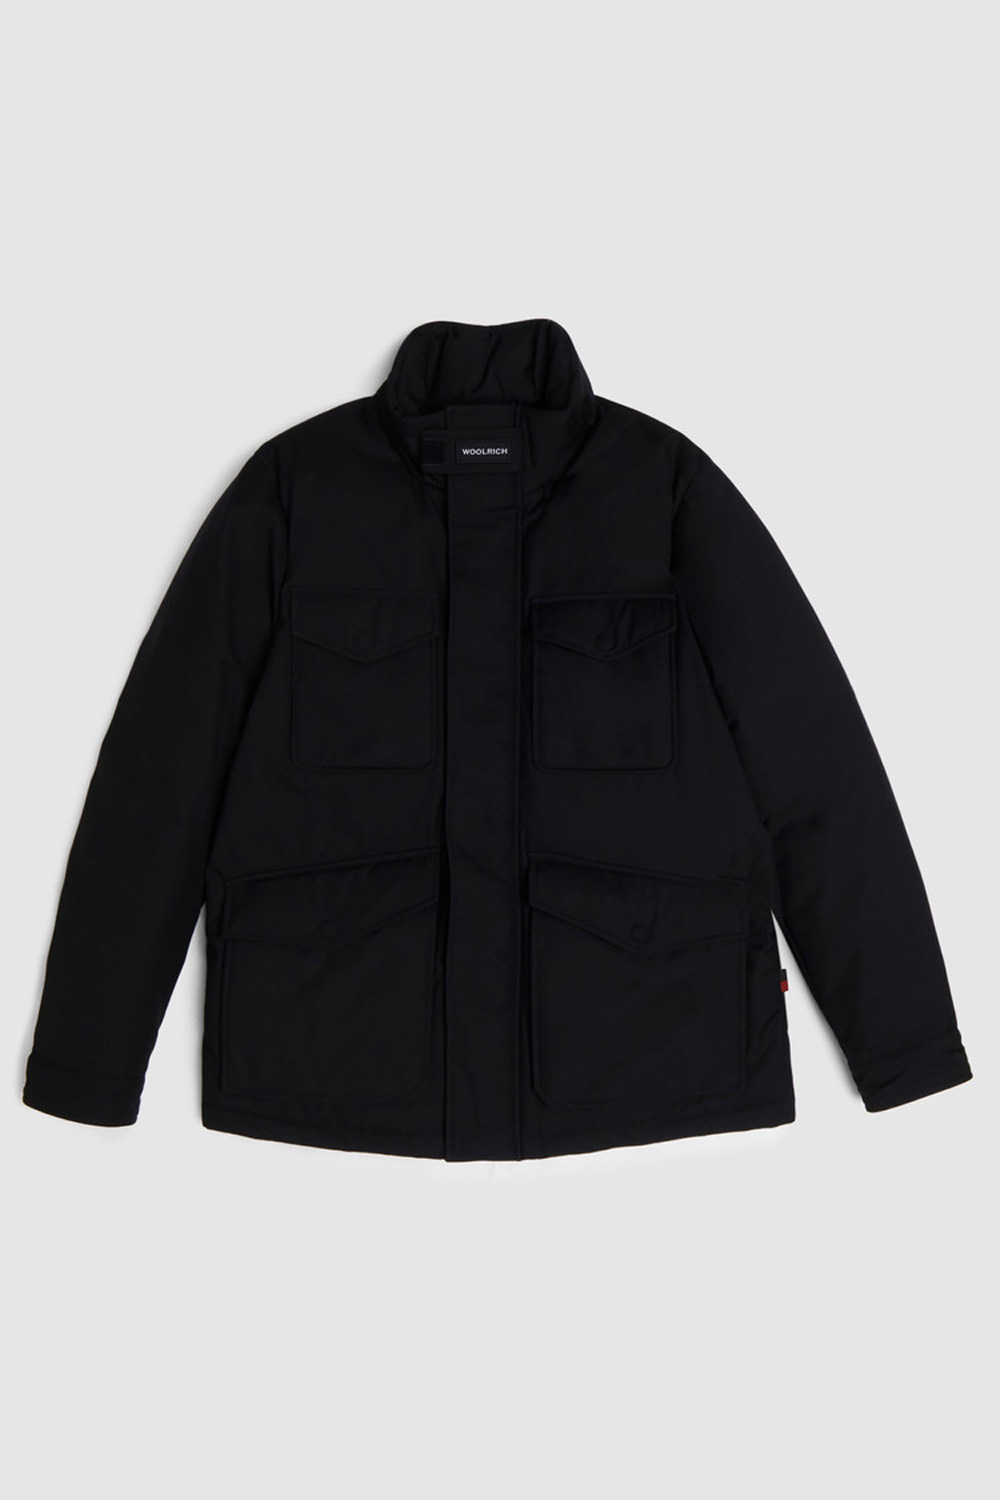 Giacca Uomo Woolrich Field Luxe Nero